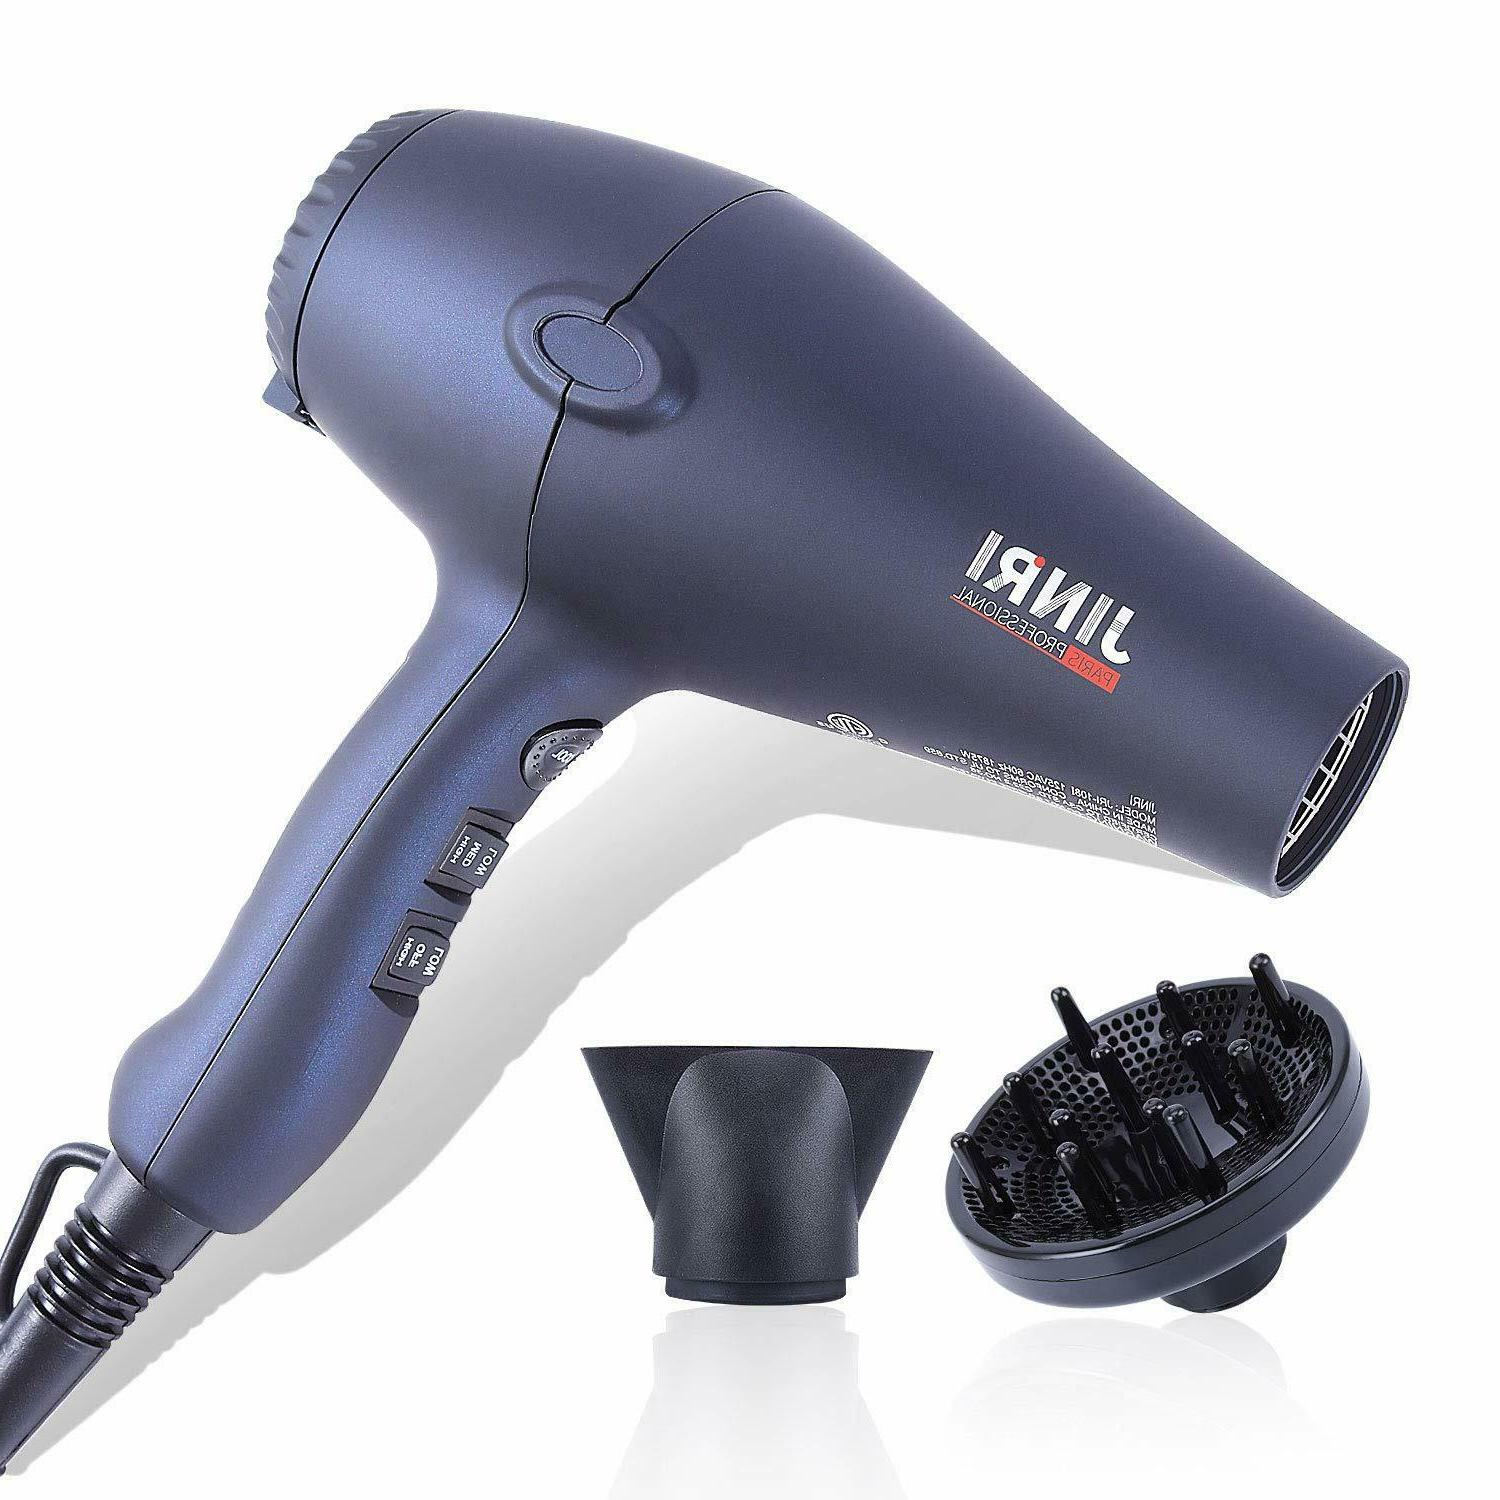 1875w Professional Dryer Negative Ion Salon